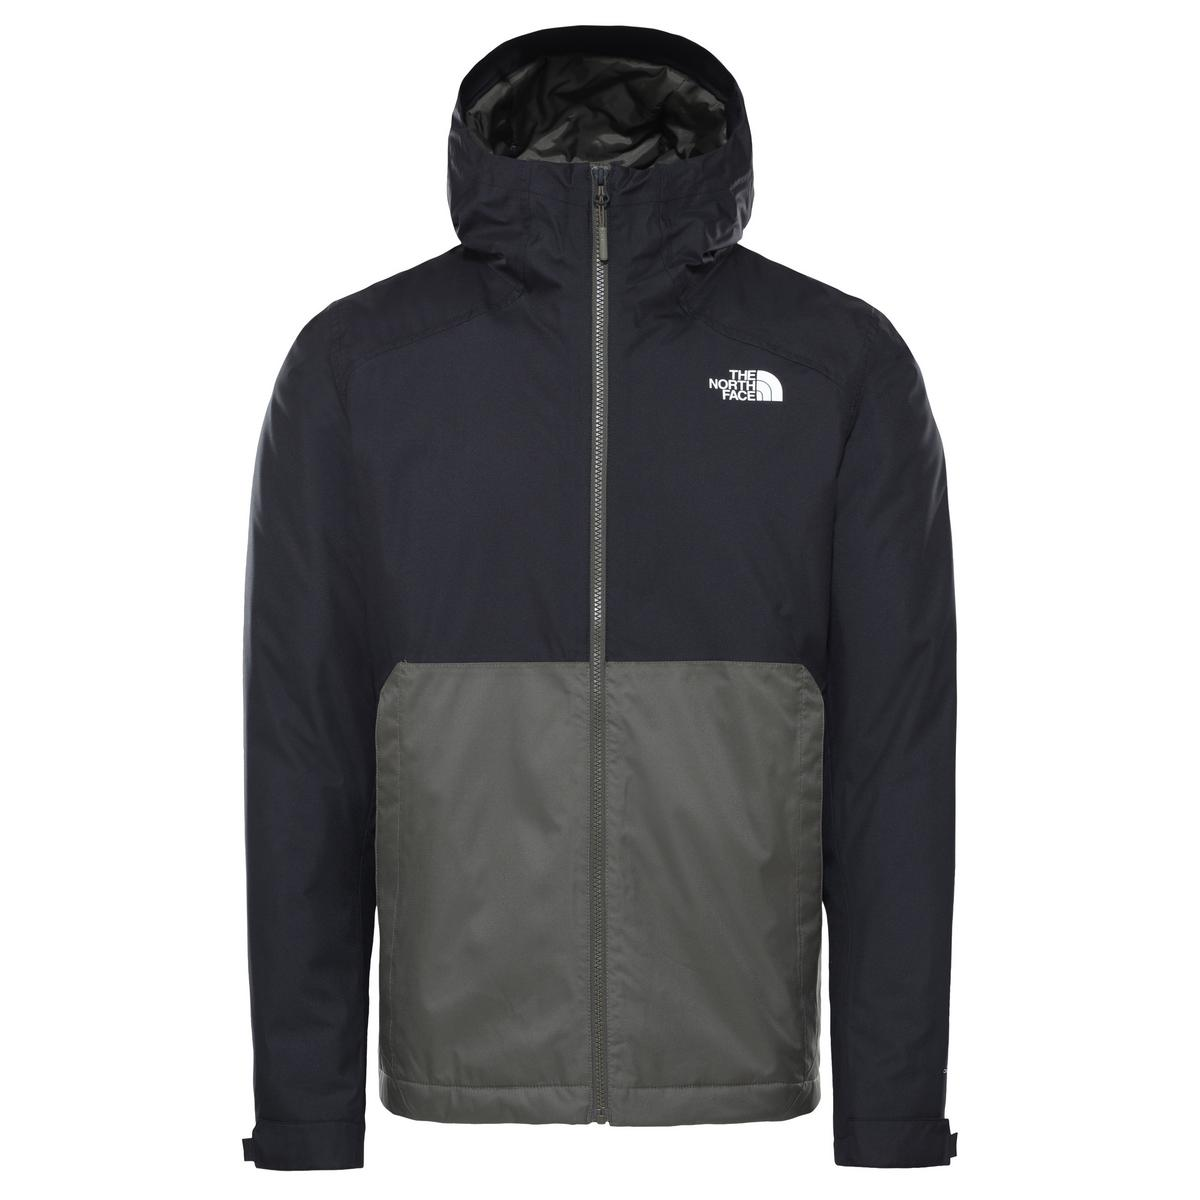 The North Face Men's Millerton Insulated Jacket - Green